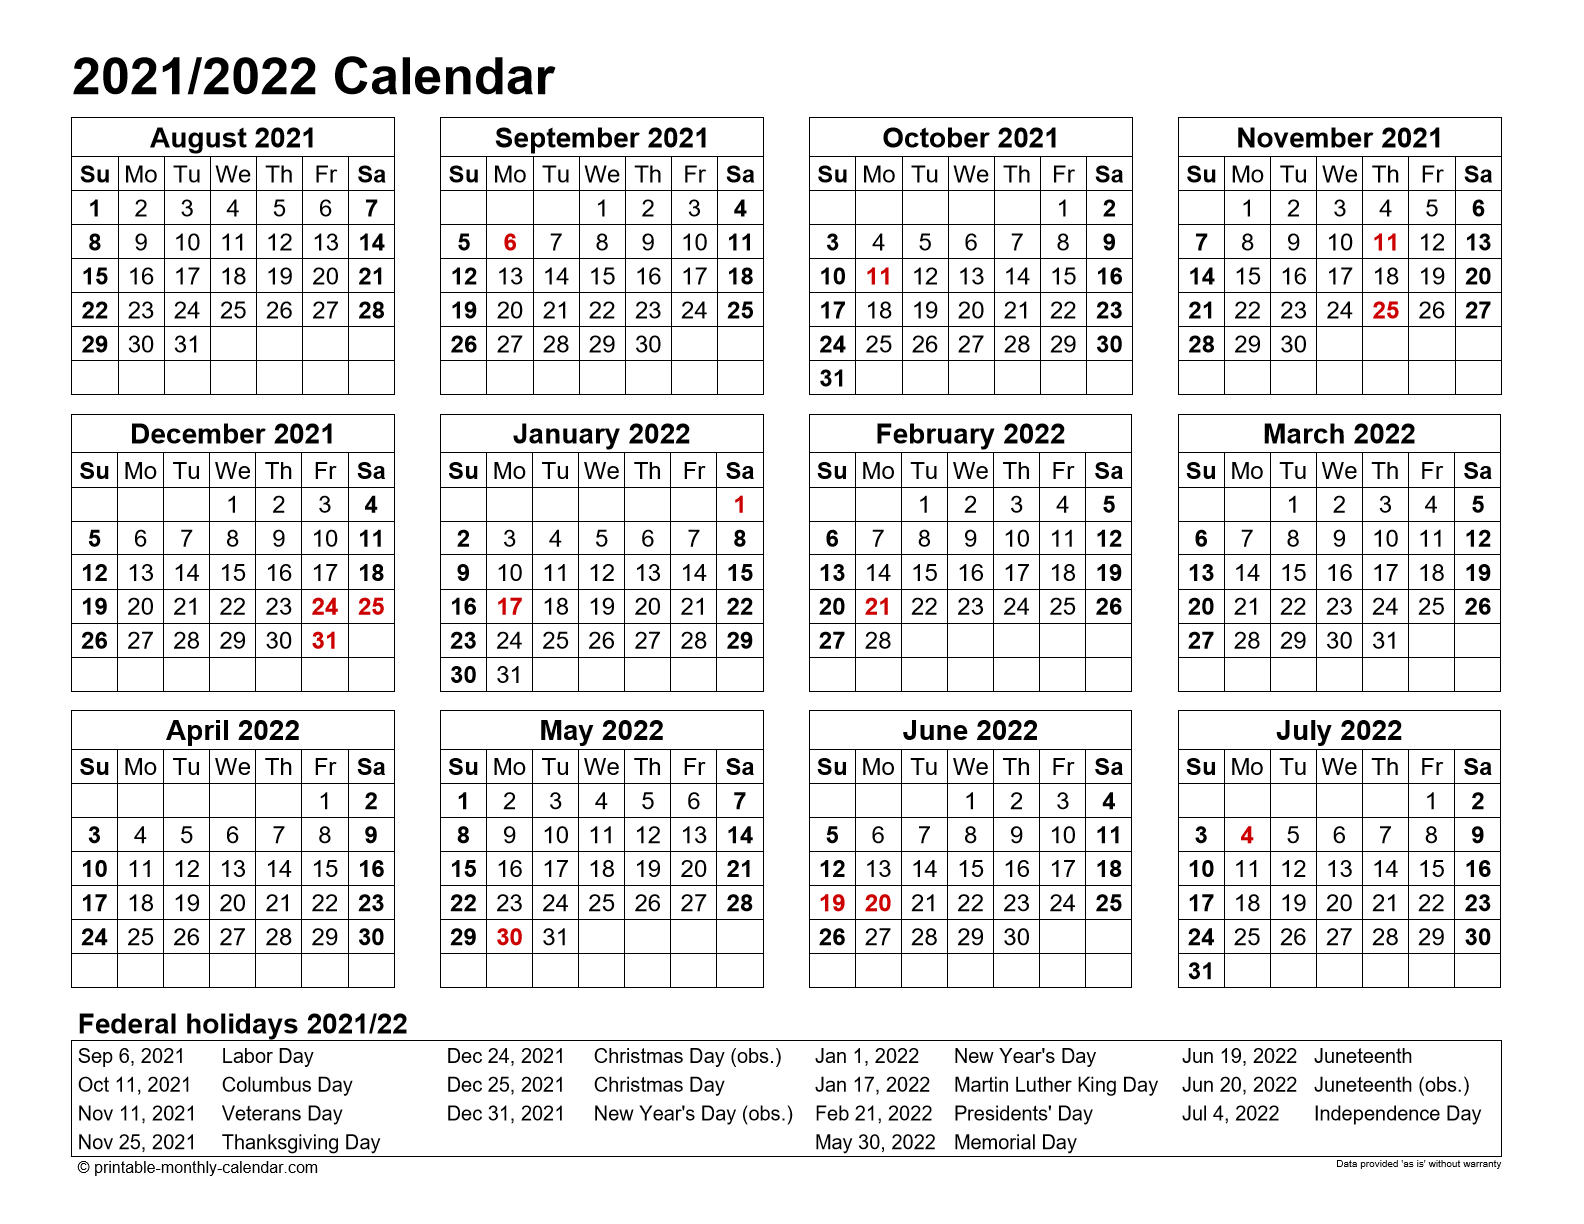 Free Printable Monthly Calendar August 2021 To July 2022